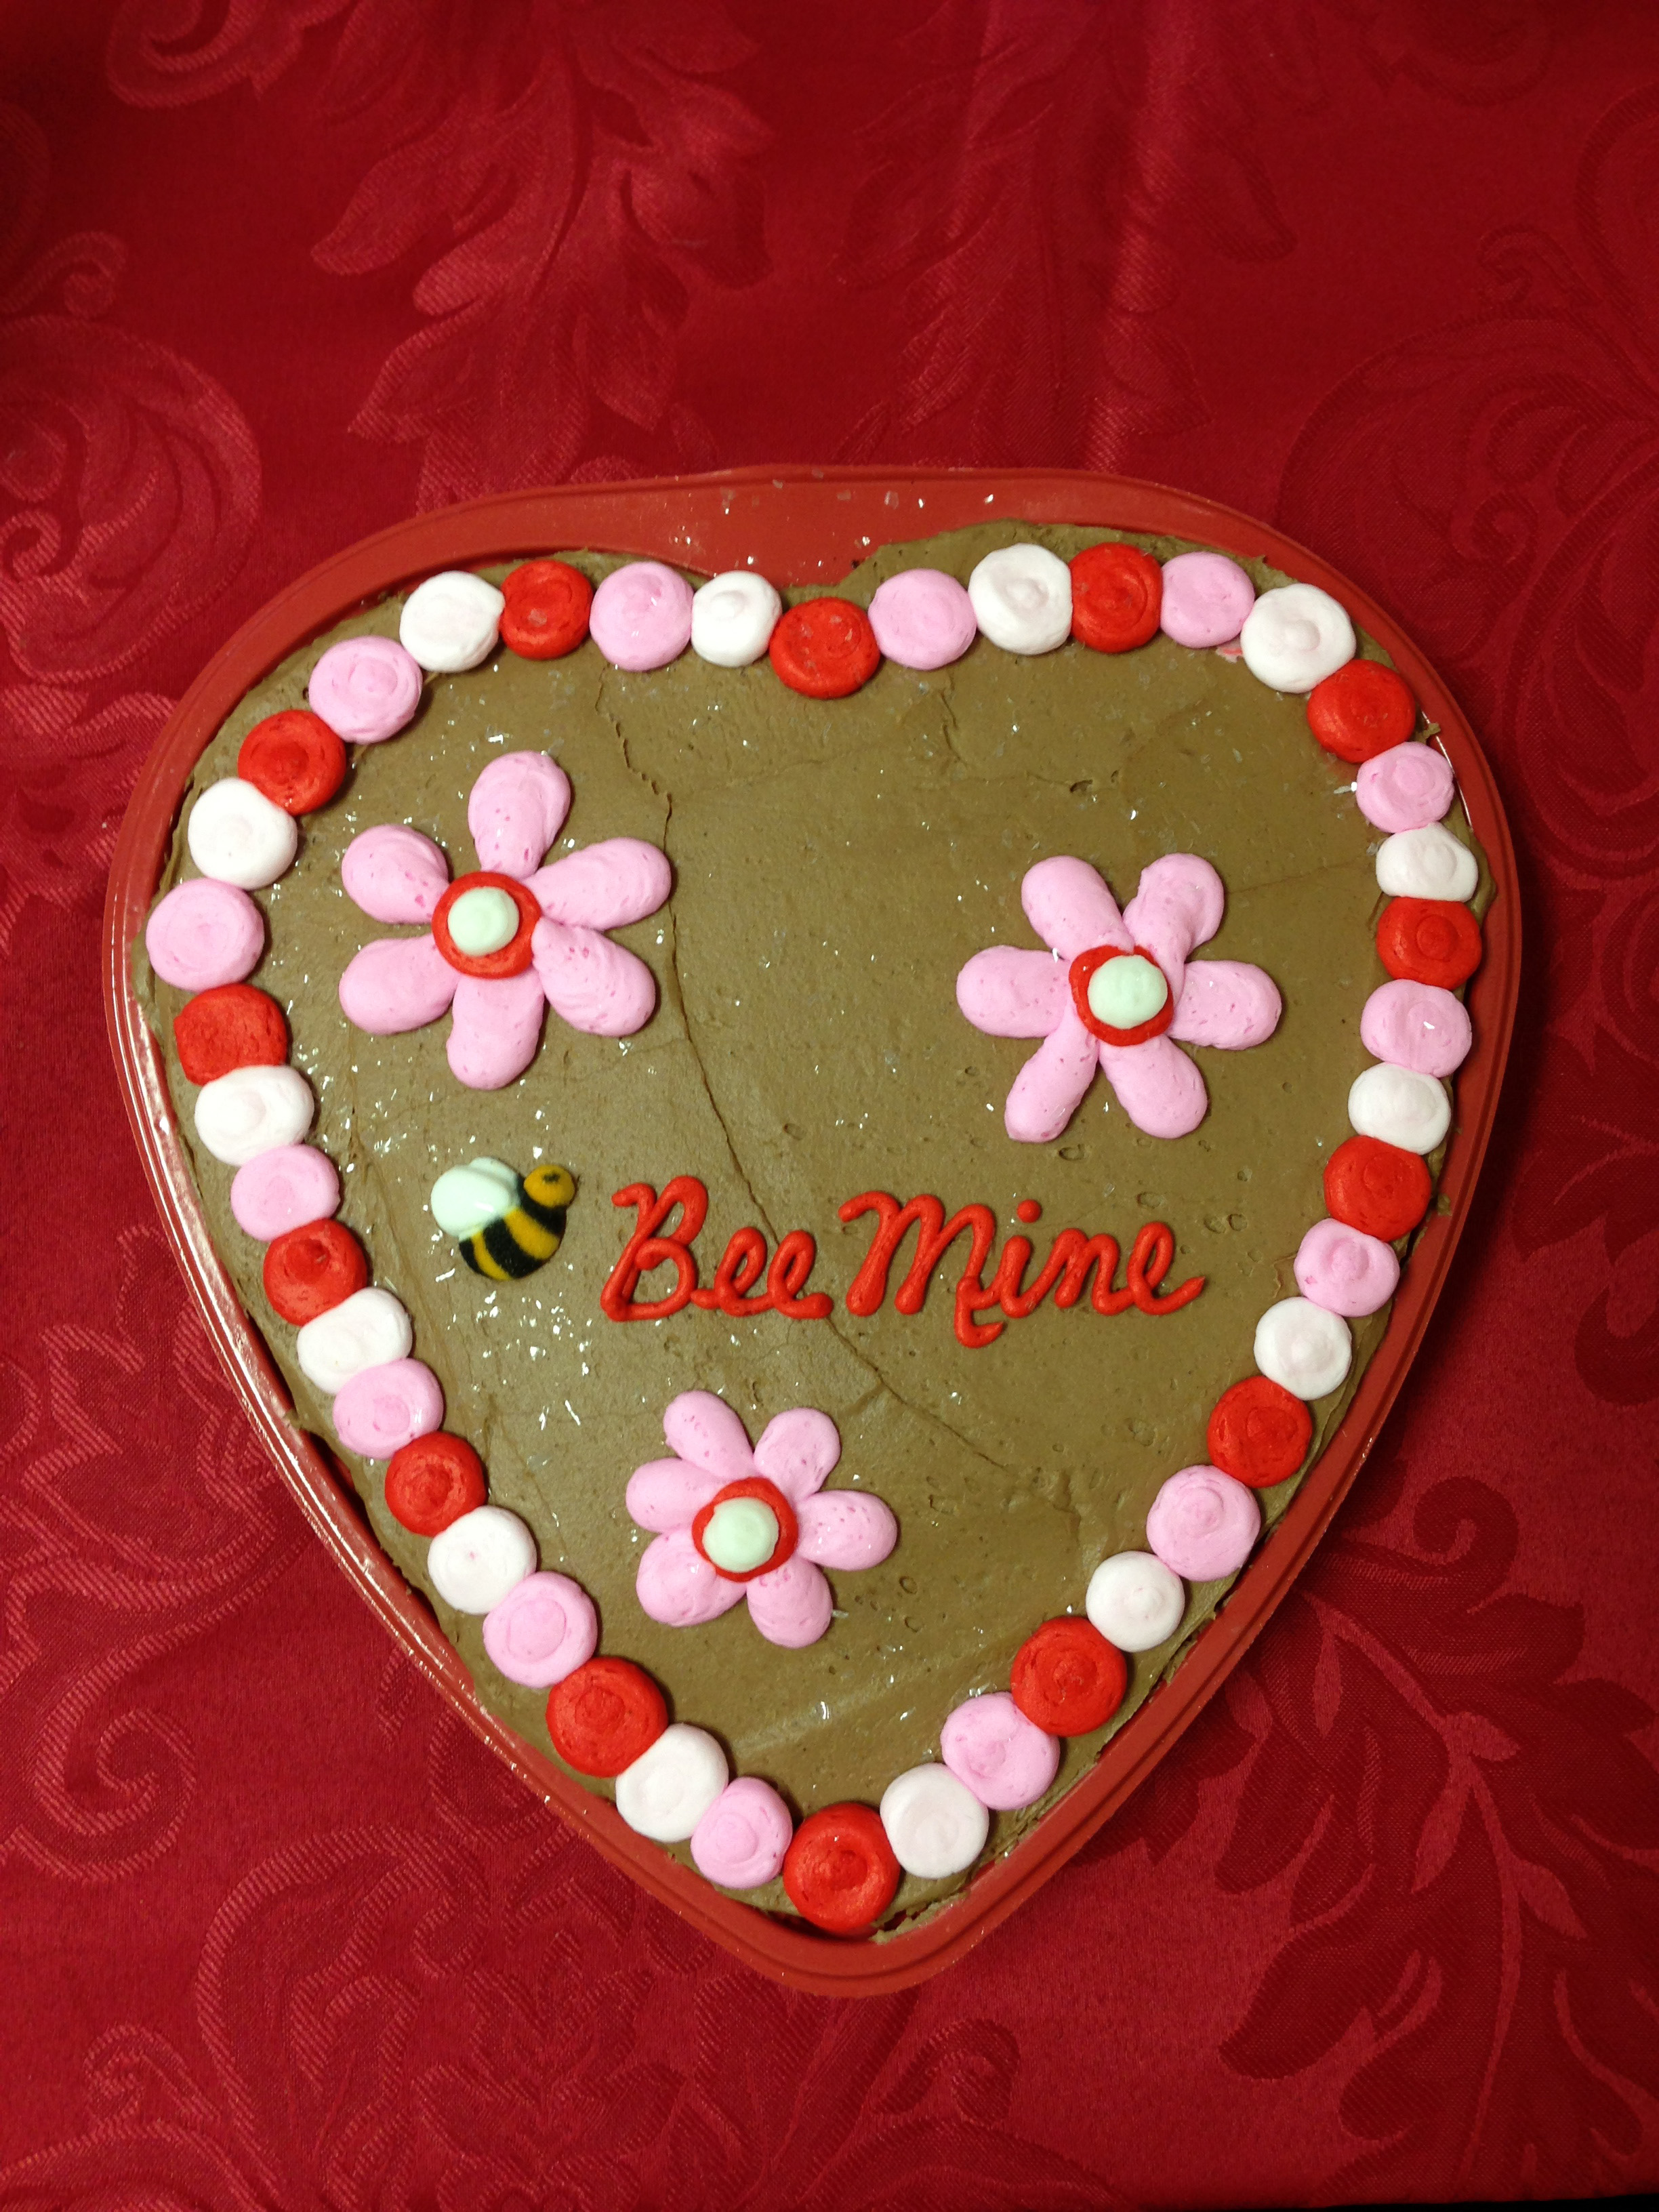 Bee Mine Heart Shaped Cake